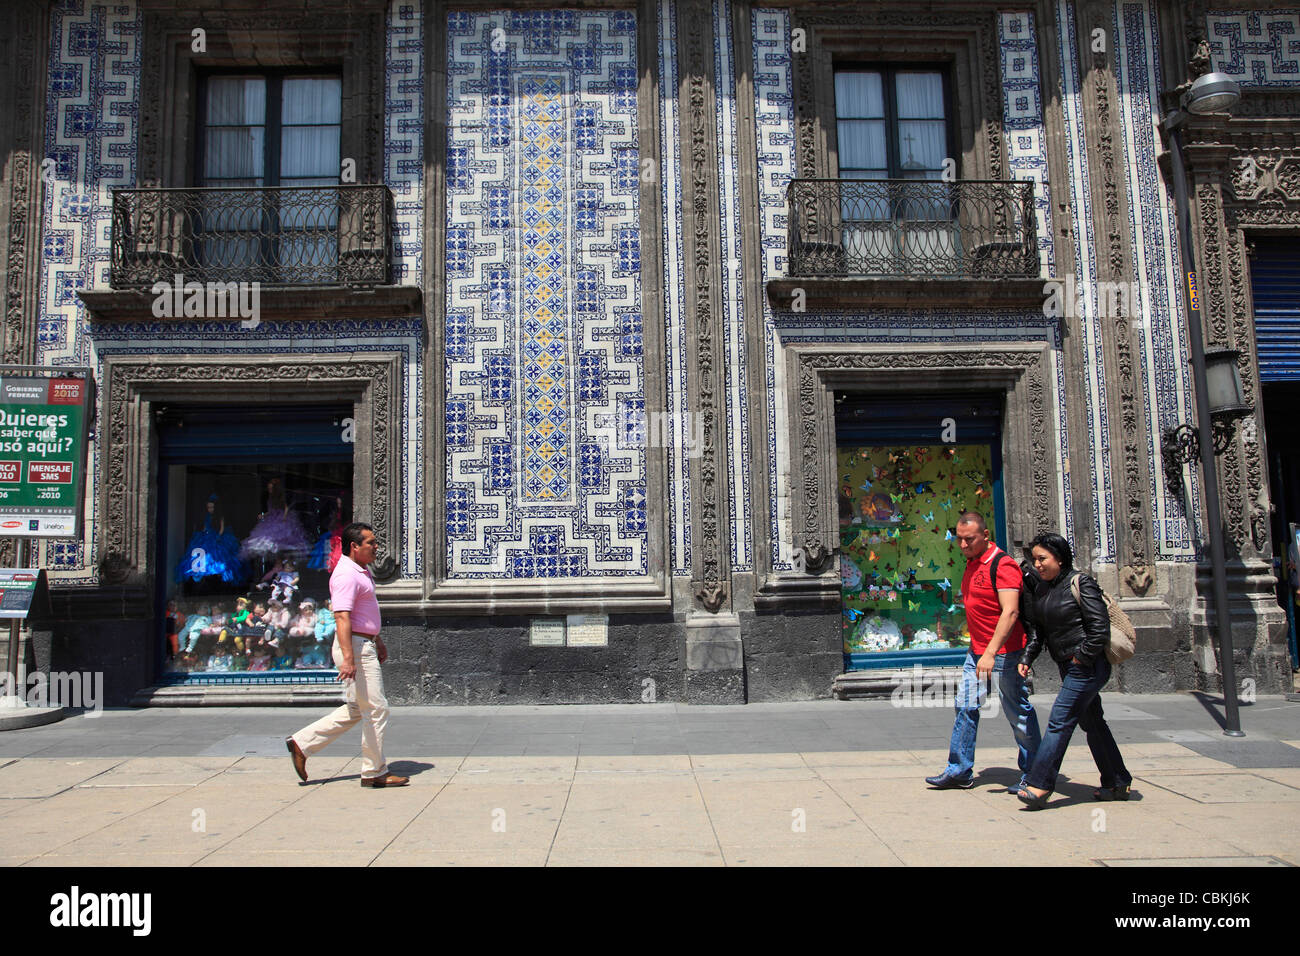 House tiles casa azulejos stock photos house tiles casa for Casa de azulejos